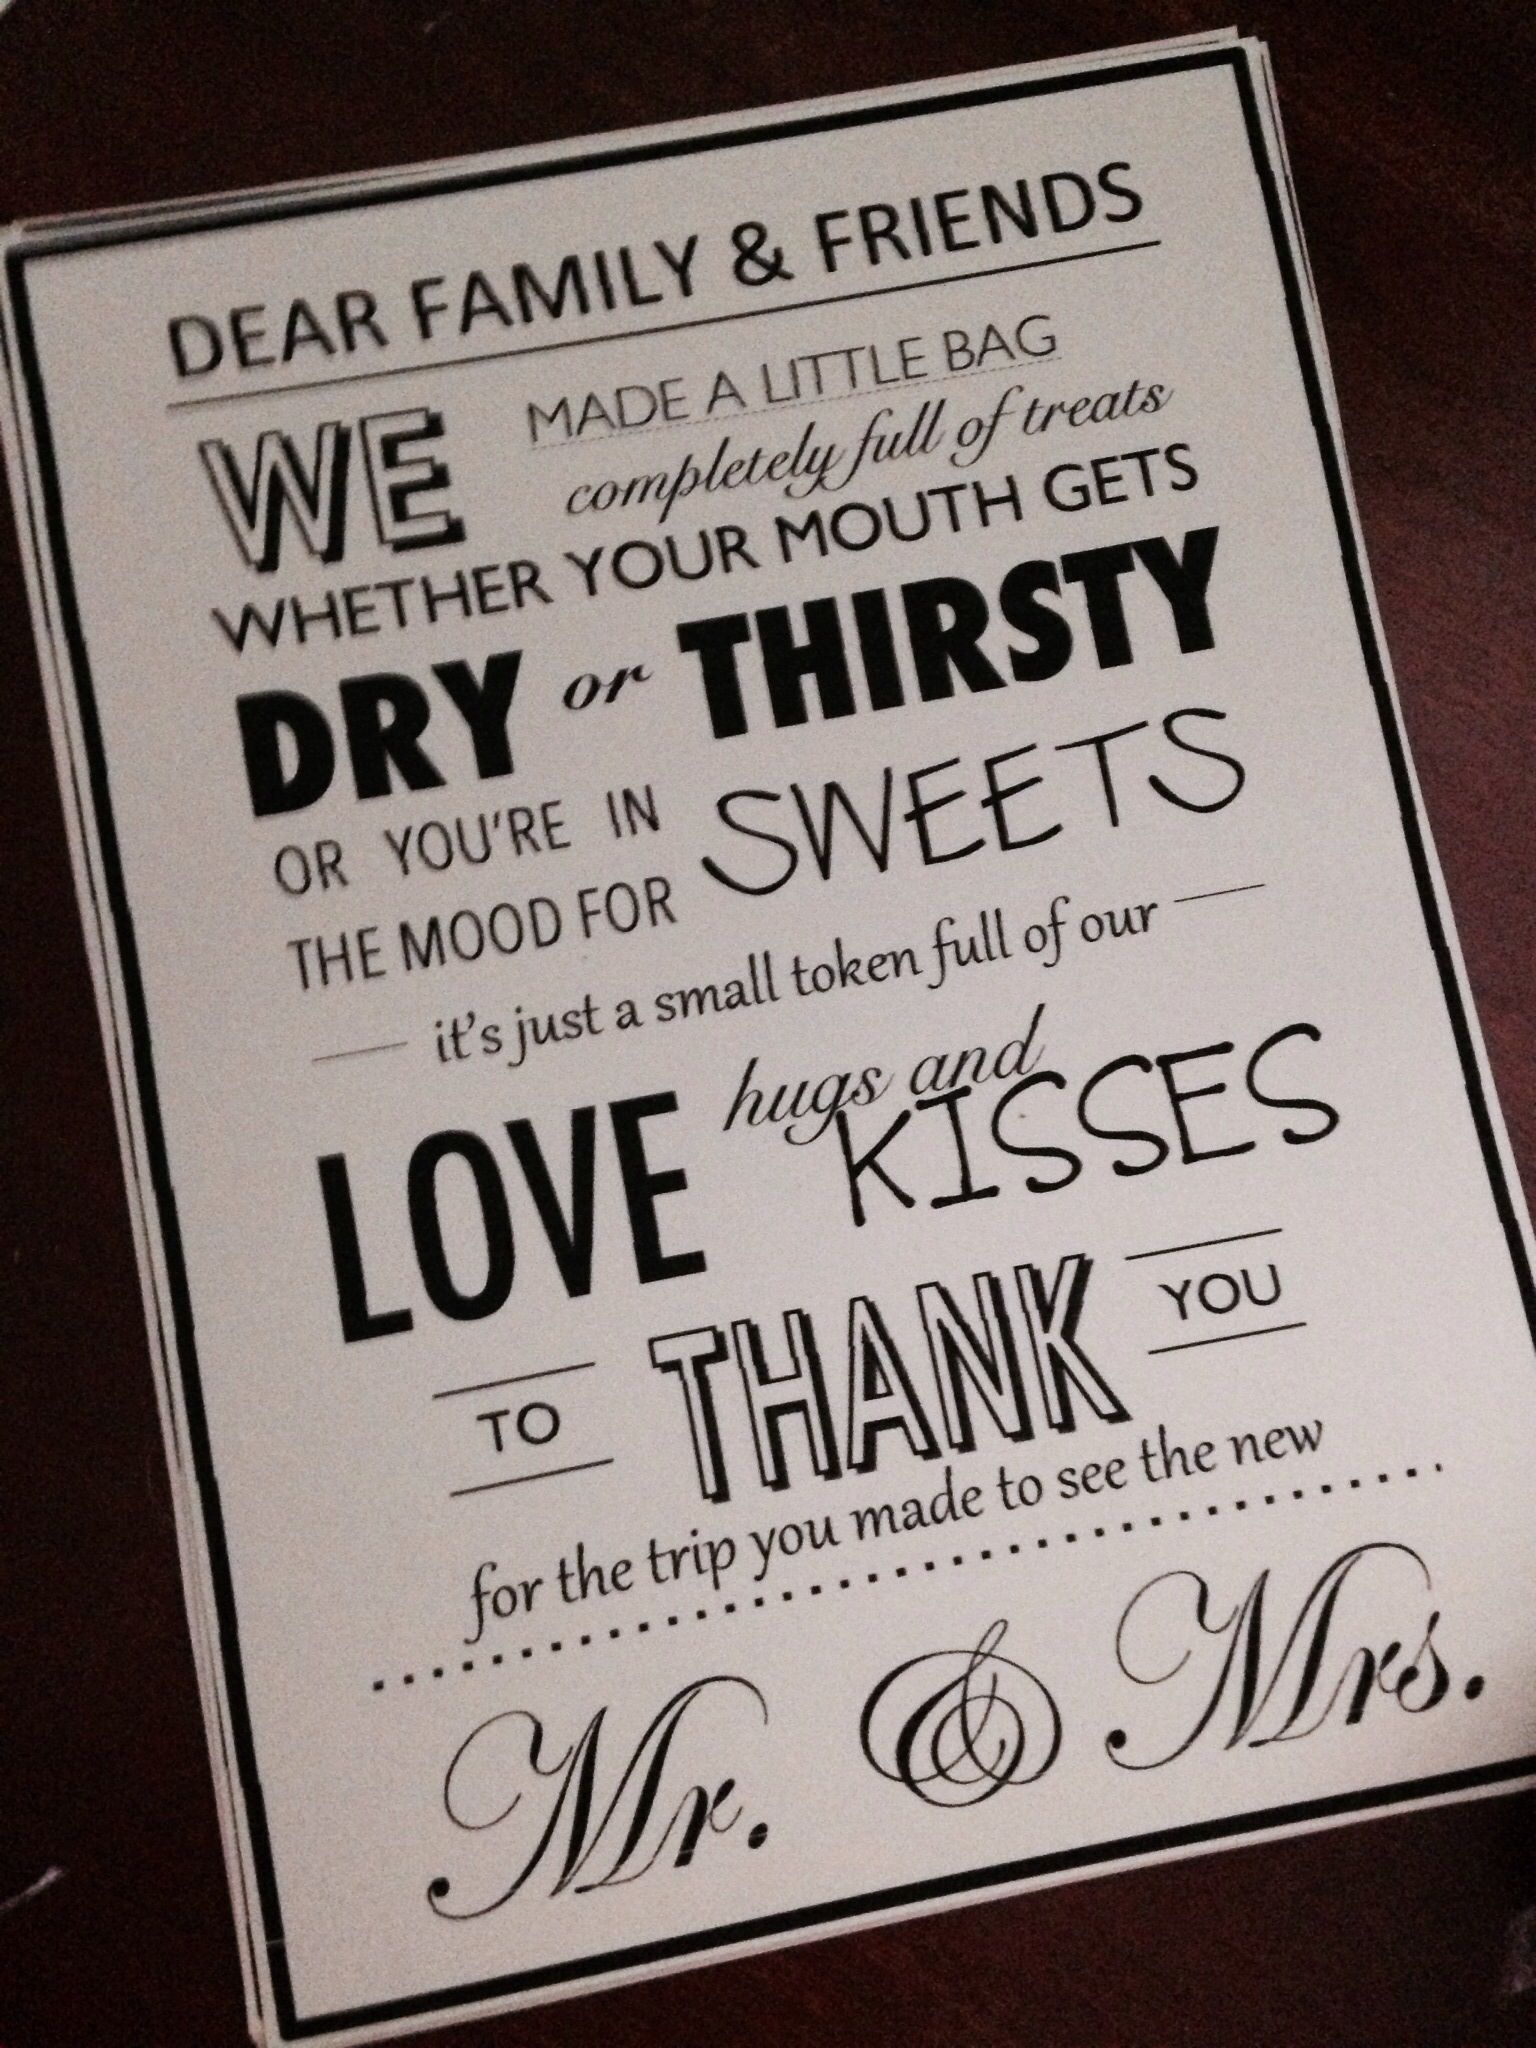 nicole created this card to attach to the welcome bags for the out